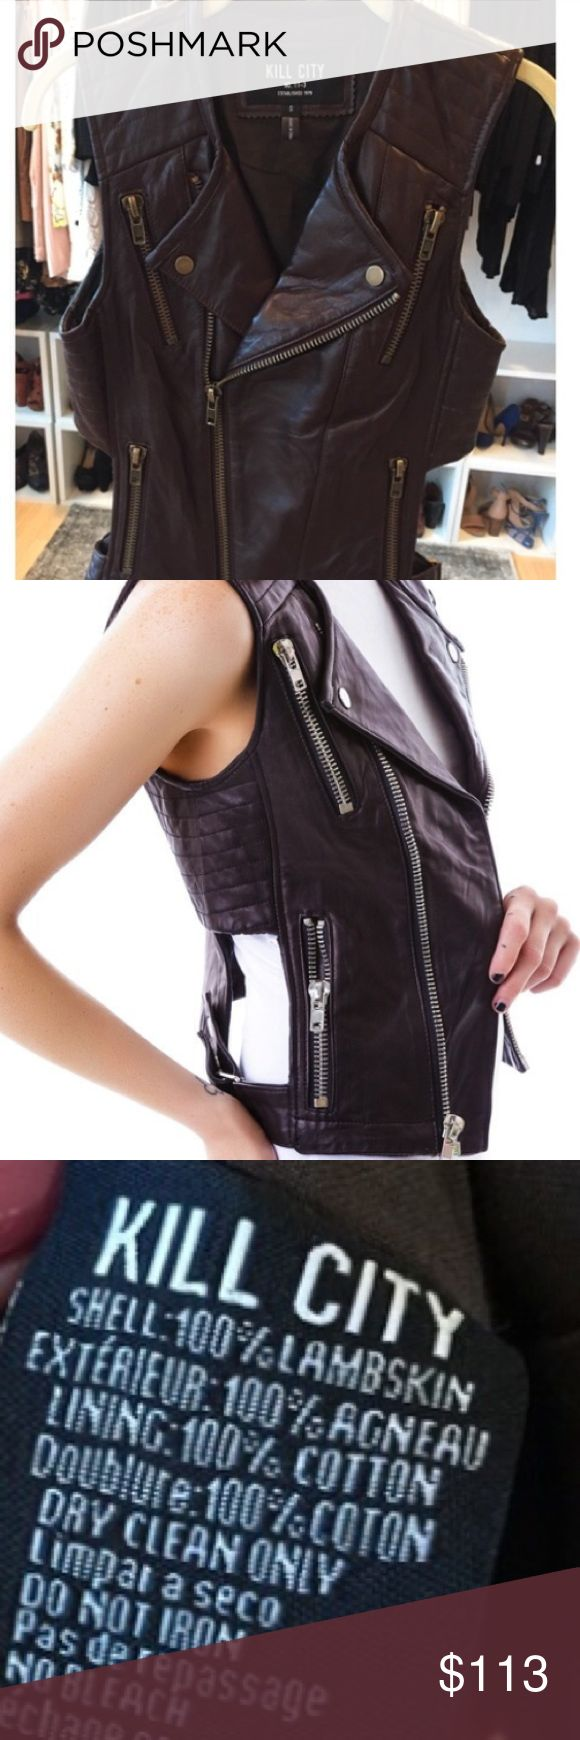 *Reduced* KILL CITY Moto lamb leather zipper vest. Kill city zipper 💯% lamb leather cutout vest. This super stylish leather motorcycle vest features a leather collar, zipper pockets, piping and ribbing throughout and cutout windows along the hips.  It's perfect for turning a casual look edgy by layering .........or rock it metal style, goth, biker, punk and even goth.   Fully lined. KILL CITY Jackets & Coats Vests